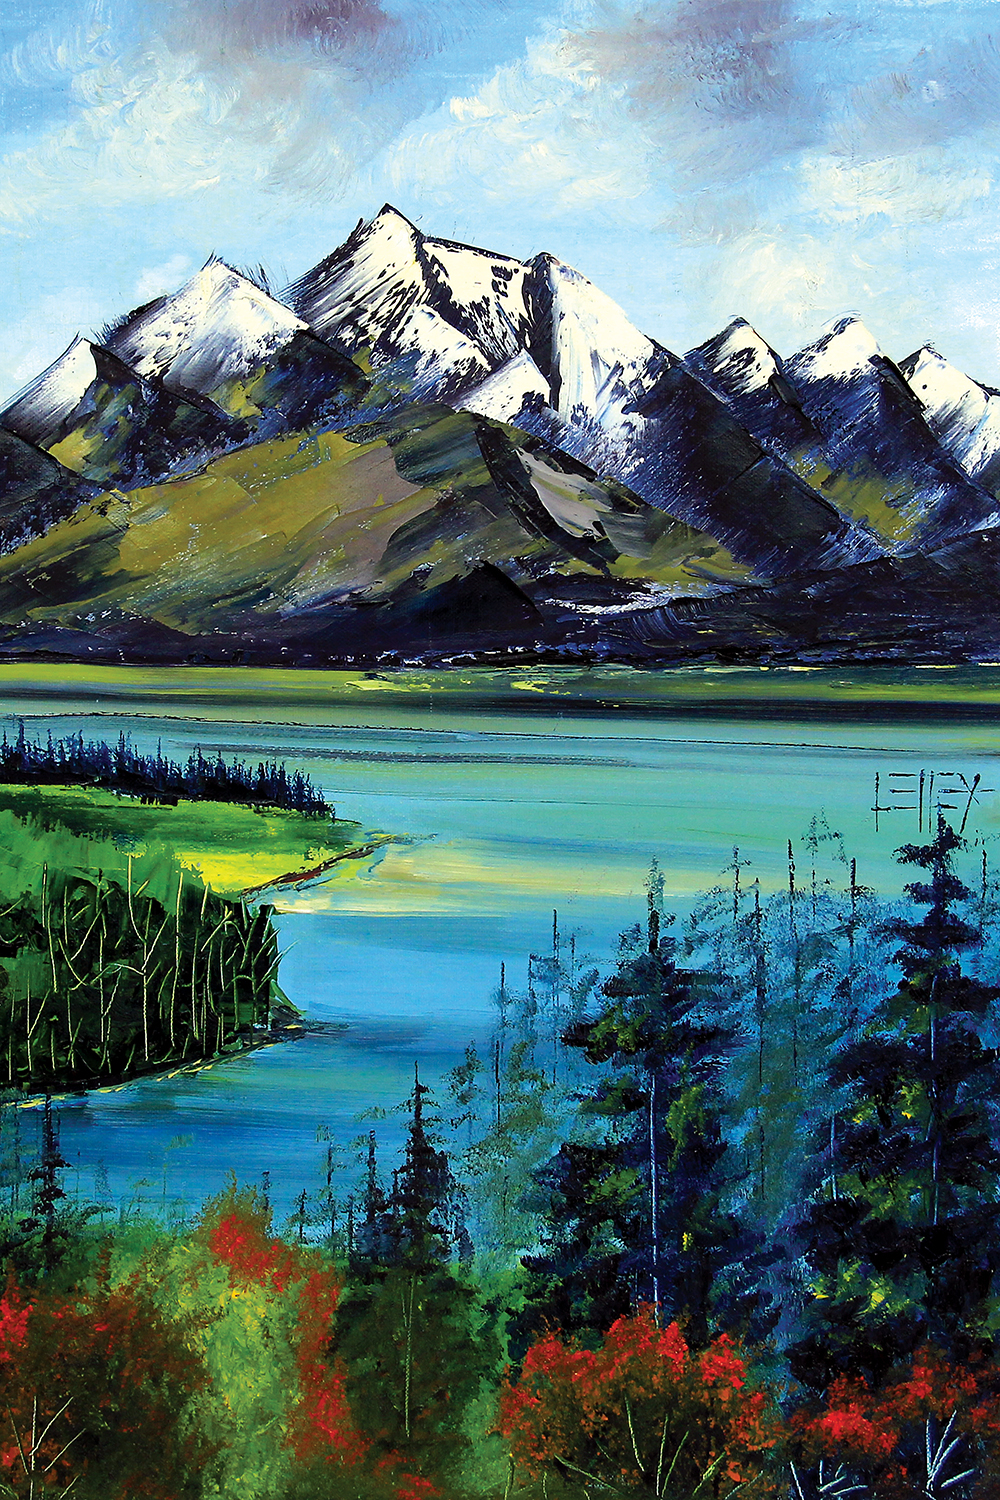 brightly colored painting of mountains, trees, and lake